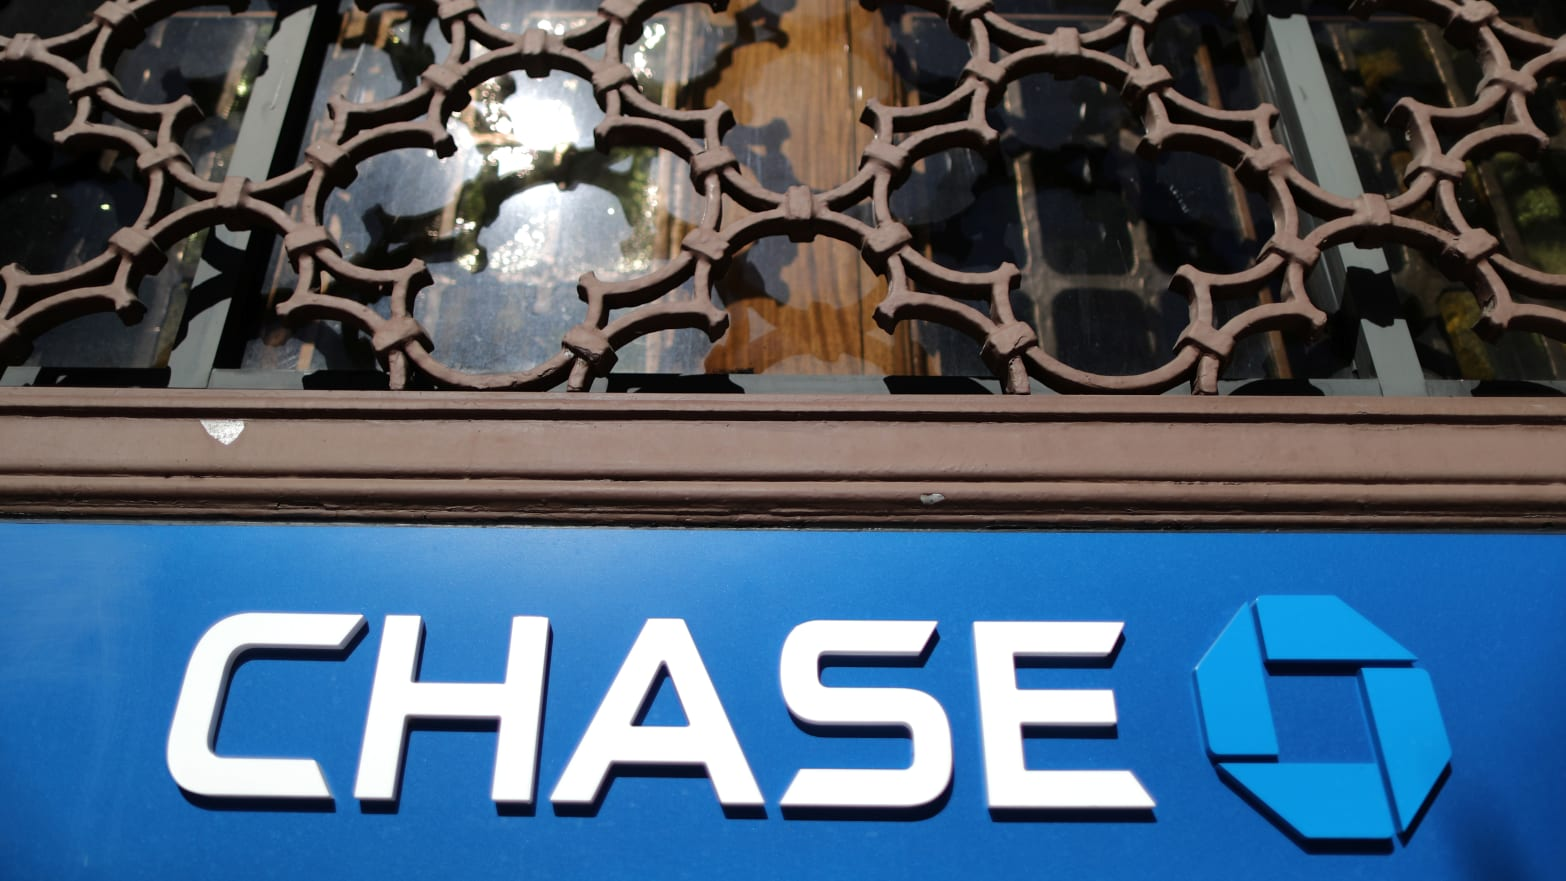 Chase To Pay $5 Million To Dad Employees Who Allege They